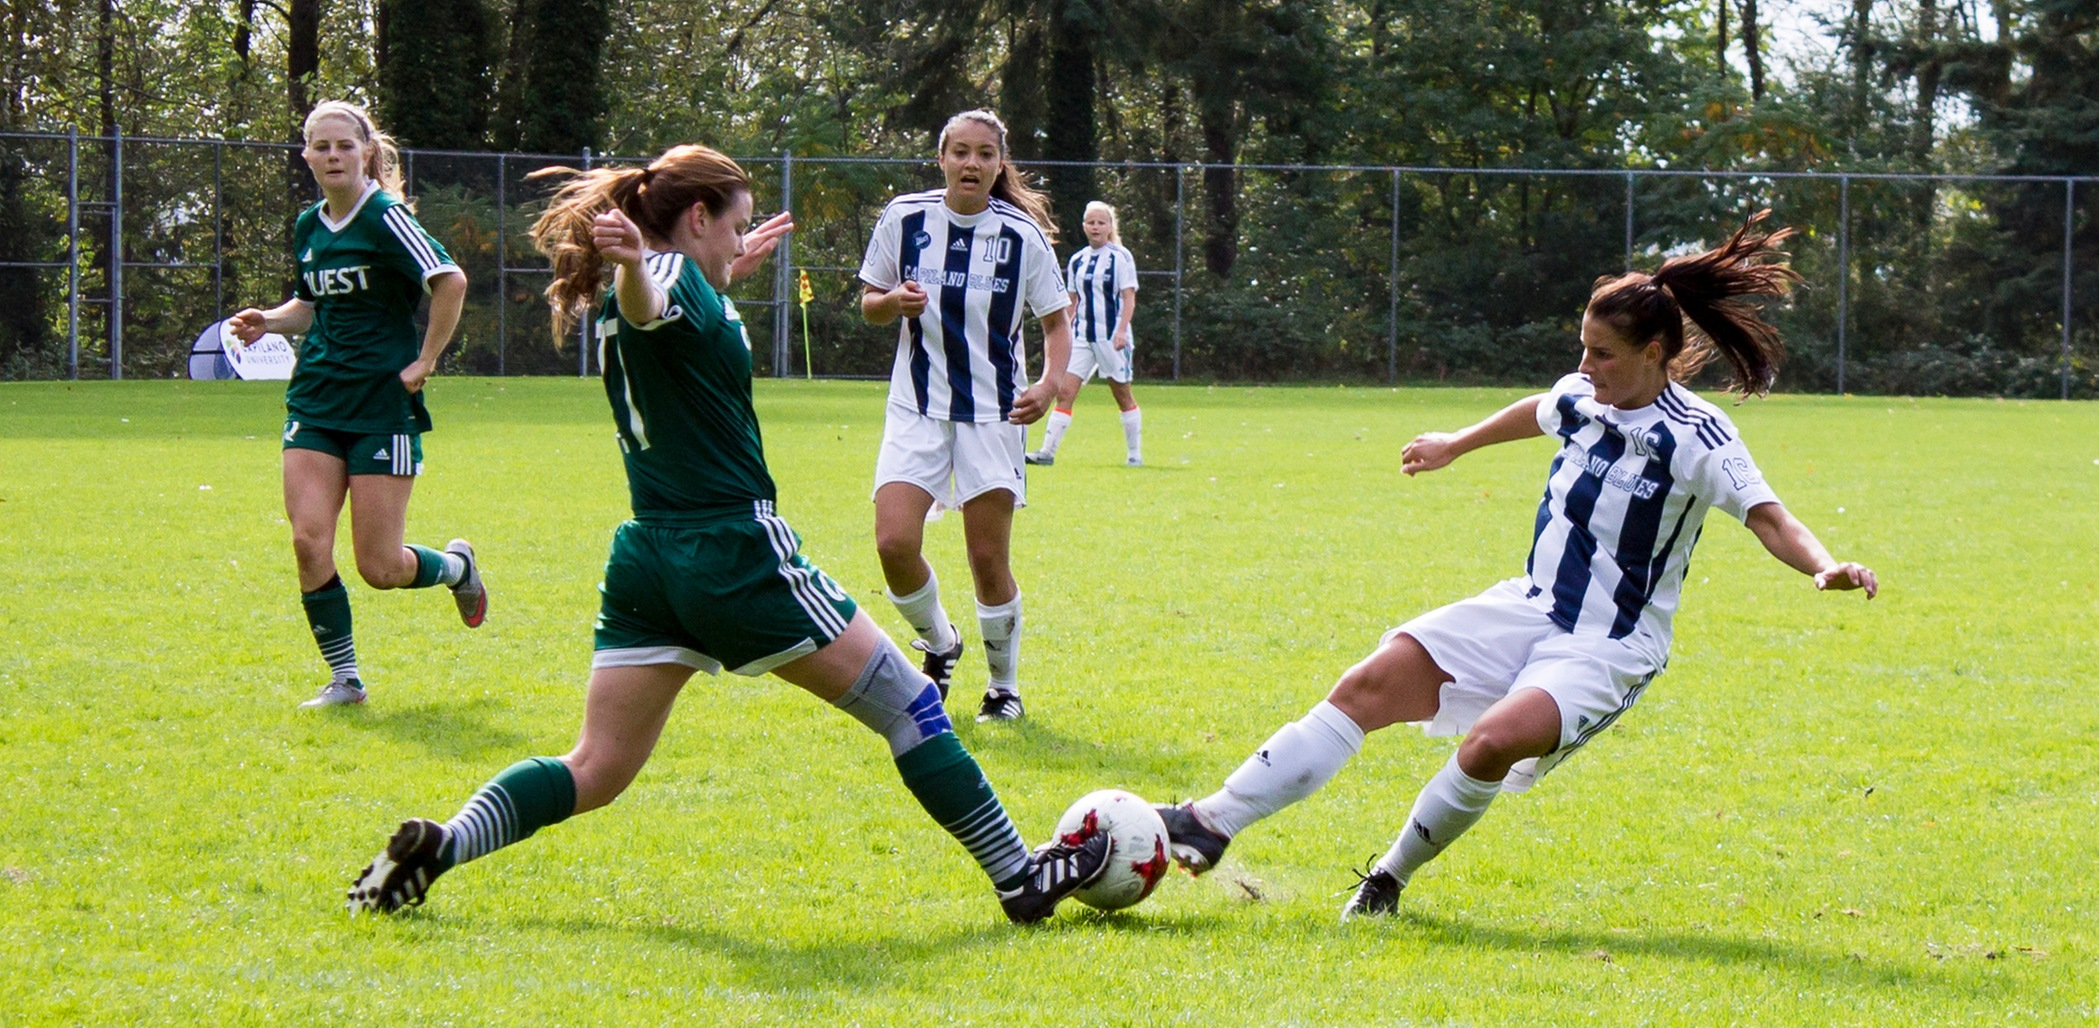 CapU soccer battles in Squamish